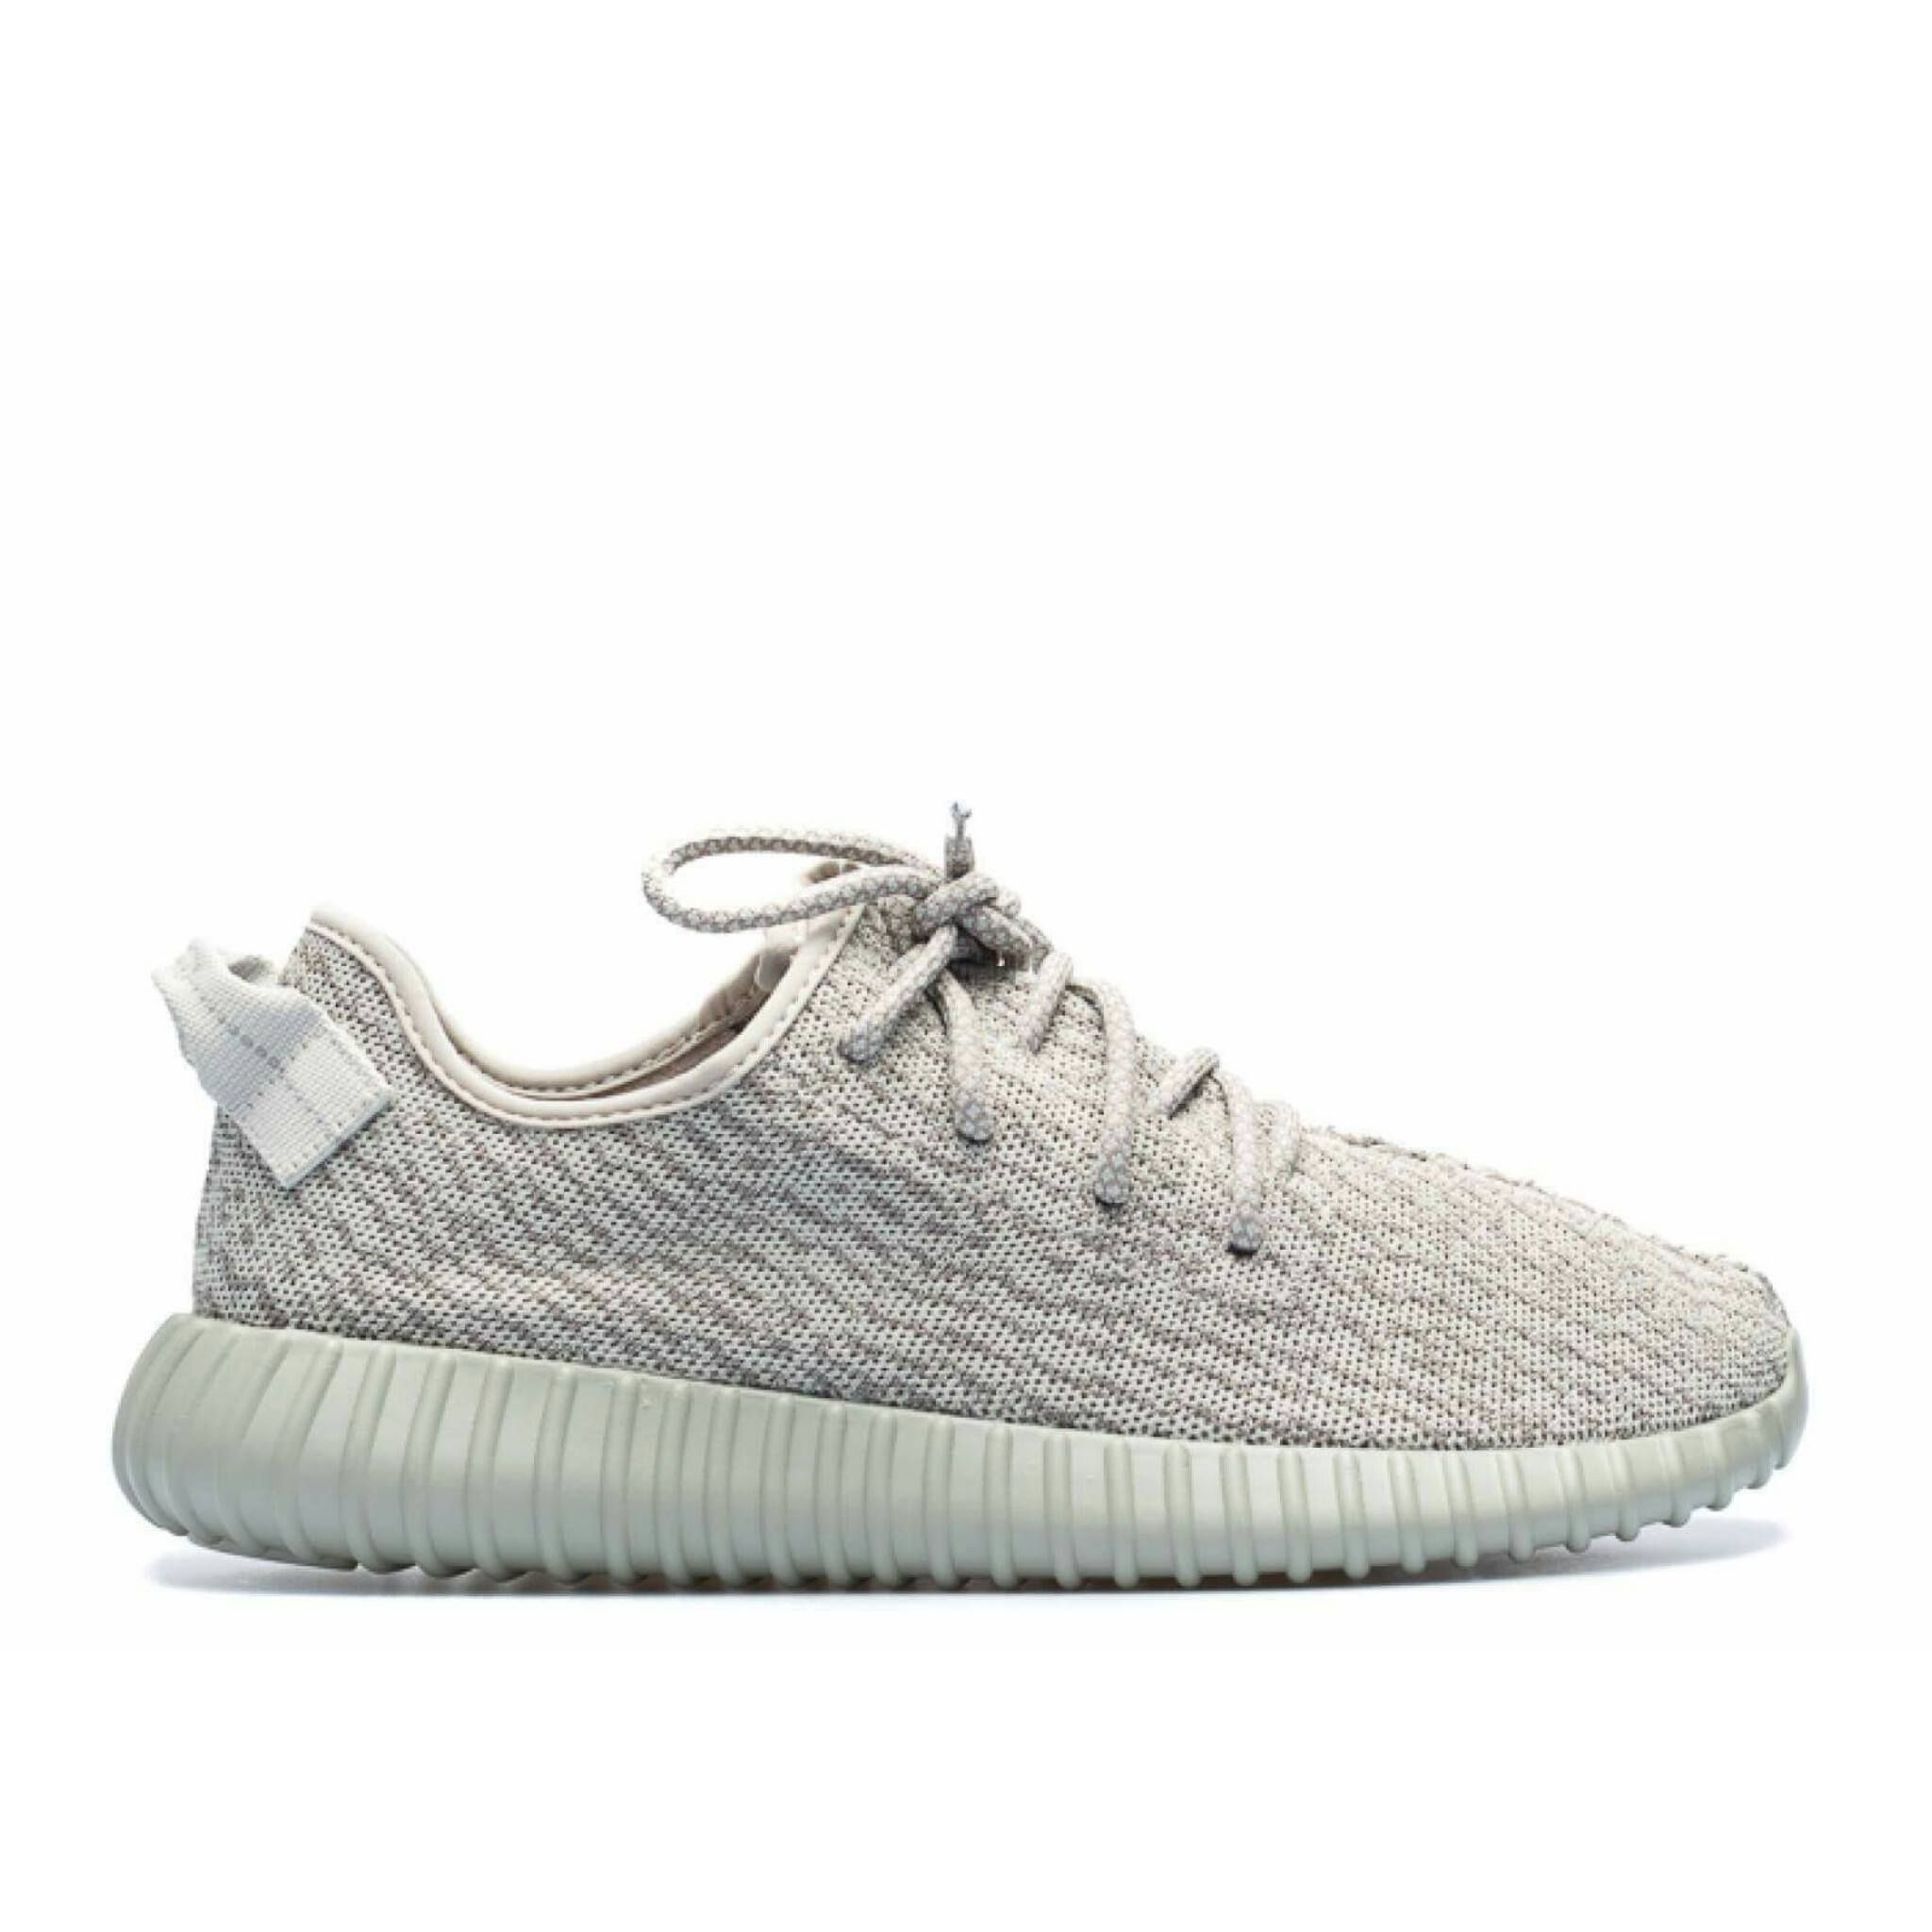 yeezy shoes adidas store